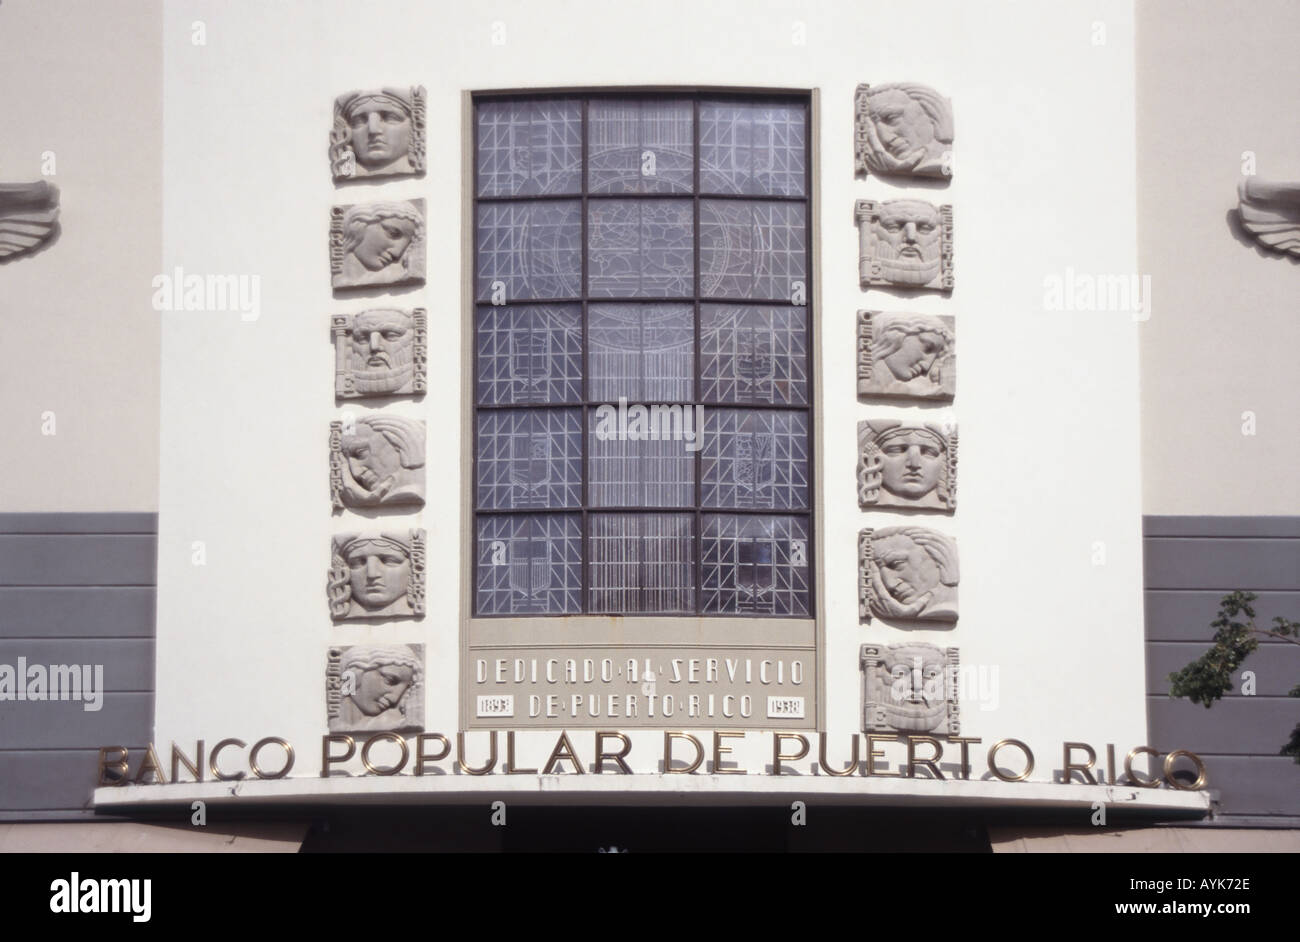 San Juan Puerto Rico Banco Popular De Puerto Rico main elevation showing sign and carved figure heads - Stock Image